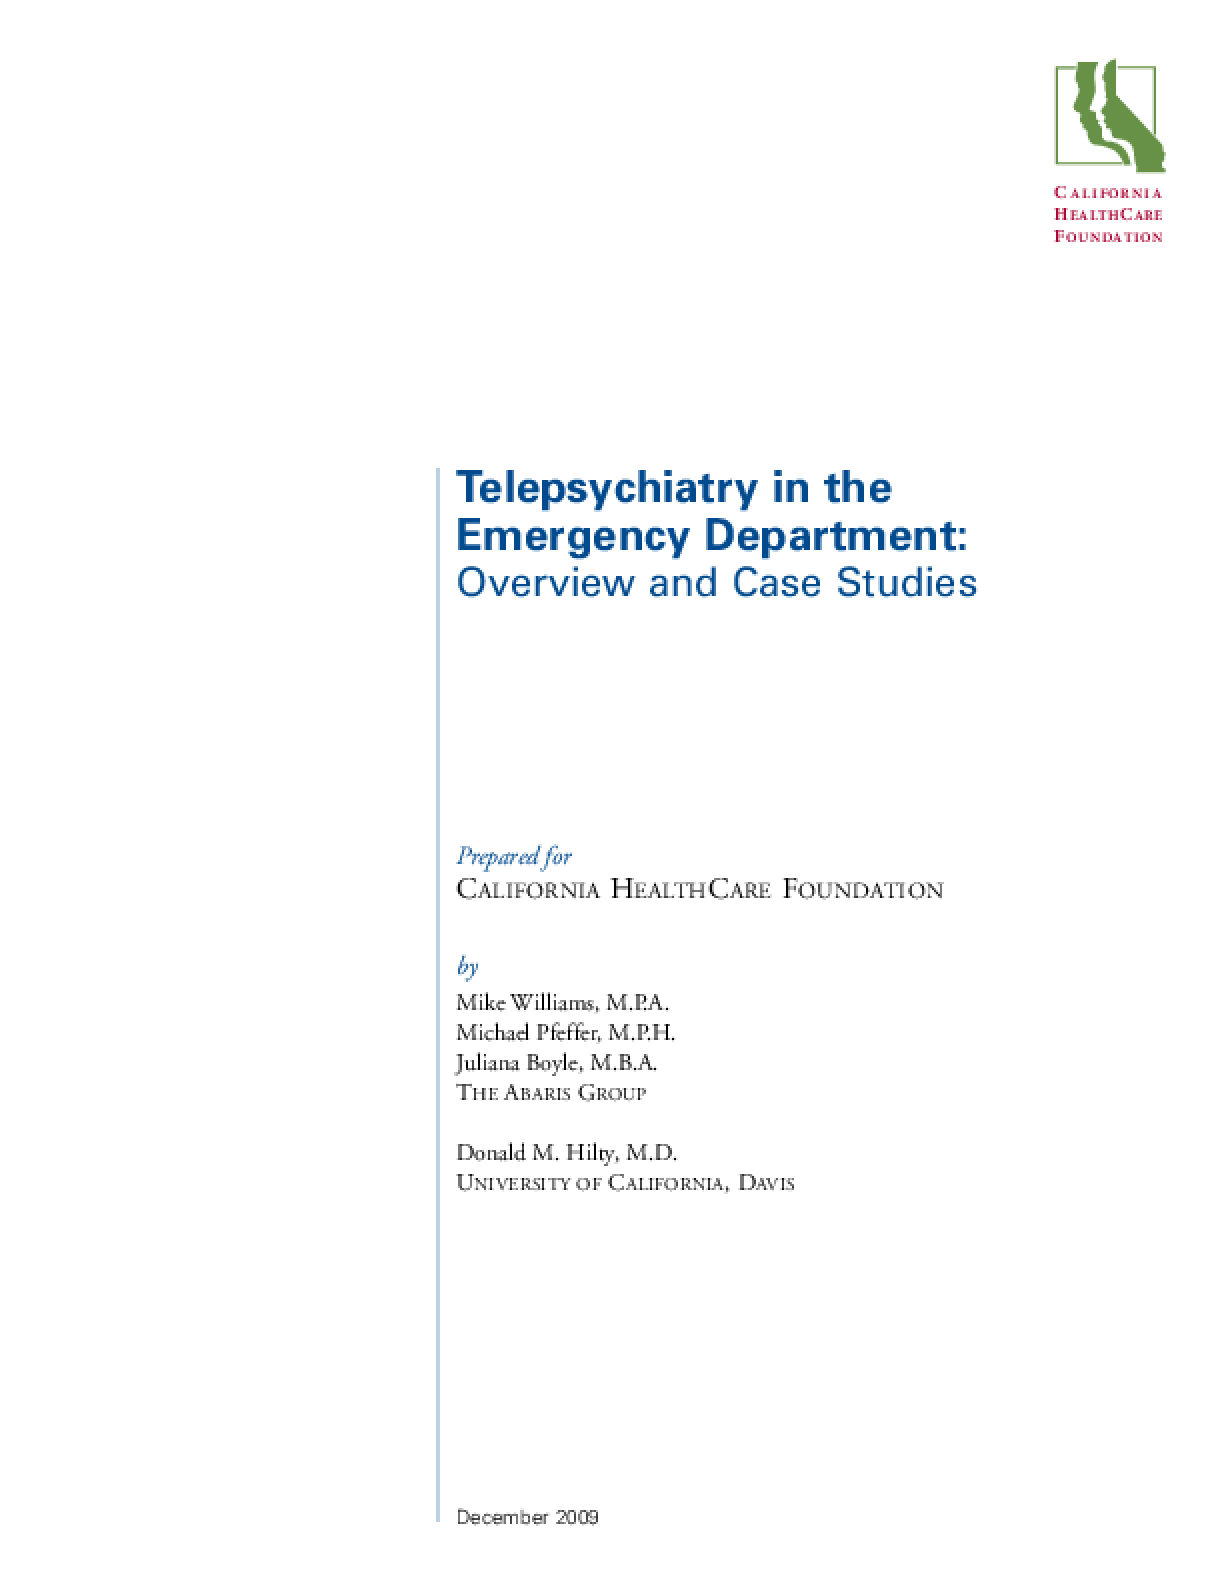 Telepsychiatry in the Emergency Department: Overview and Case Studies